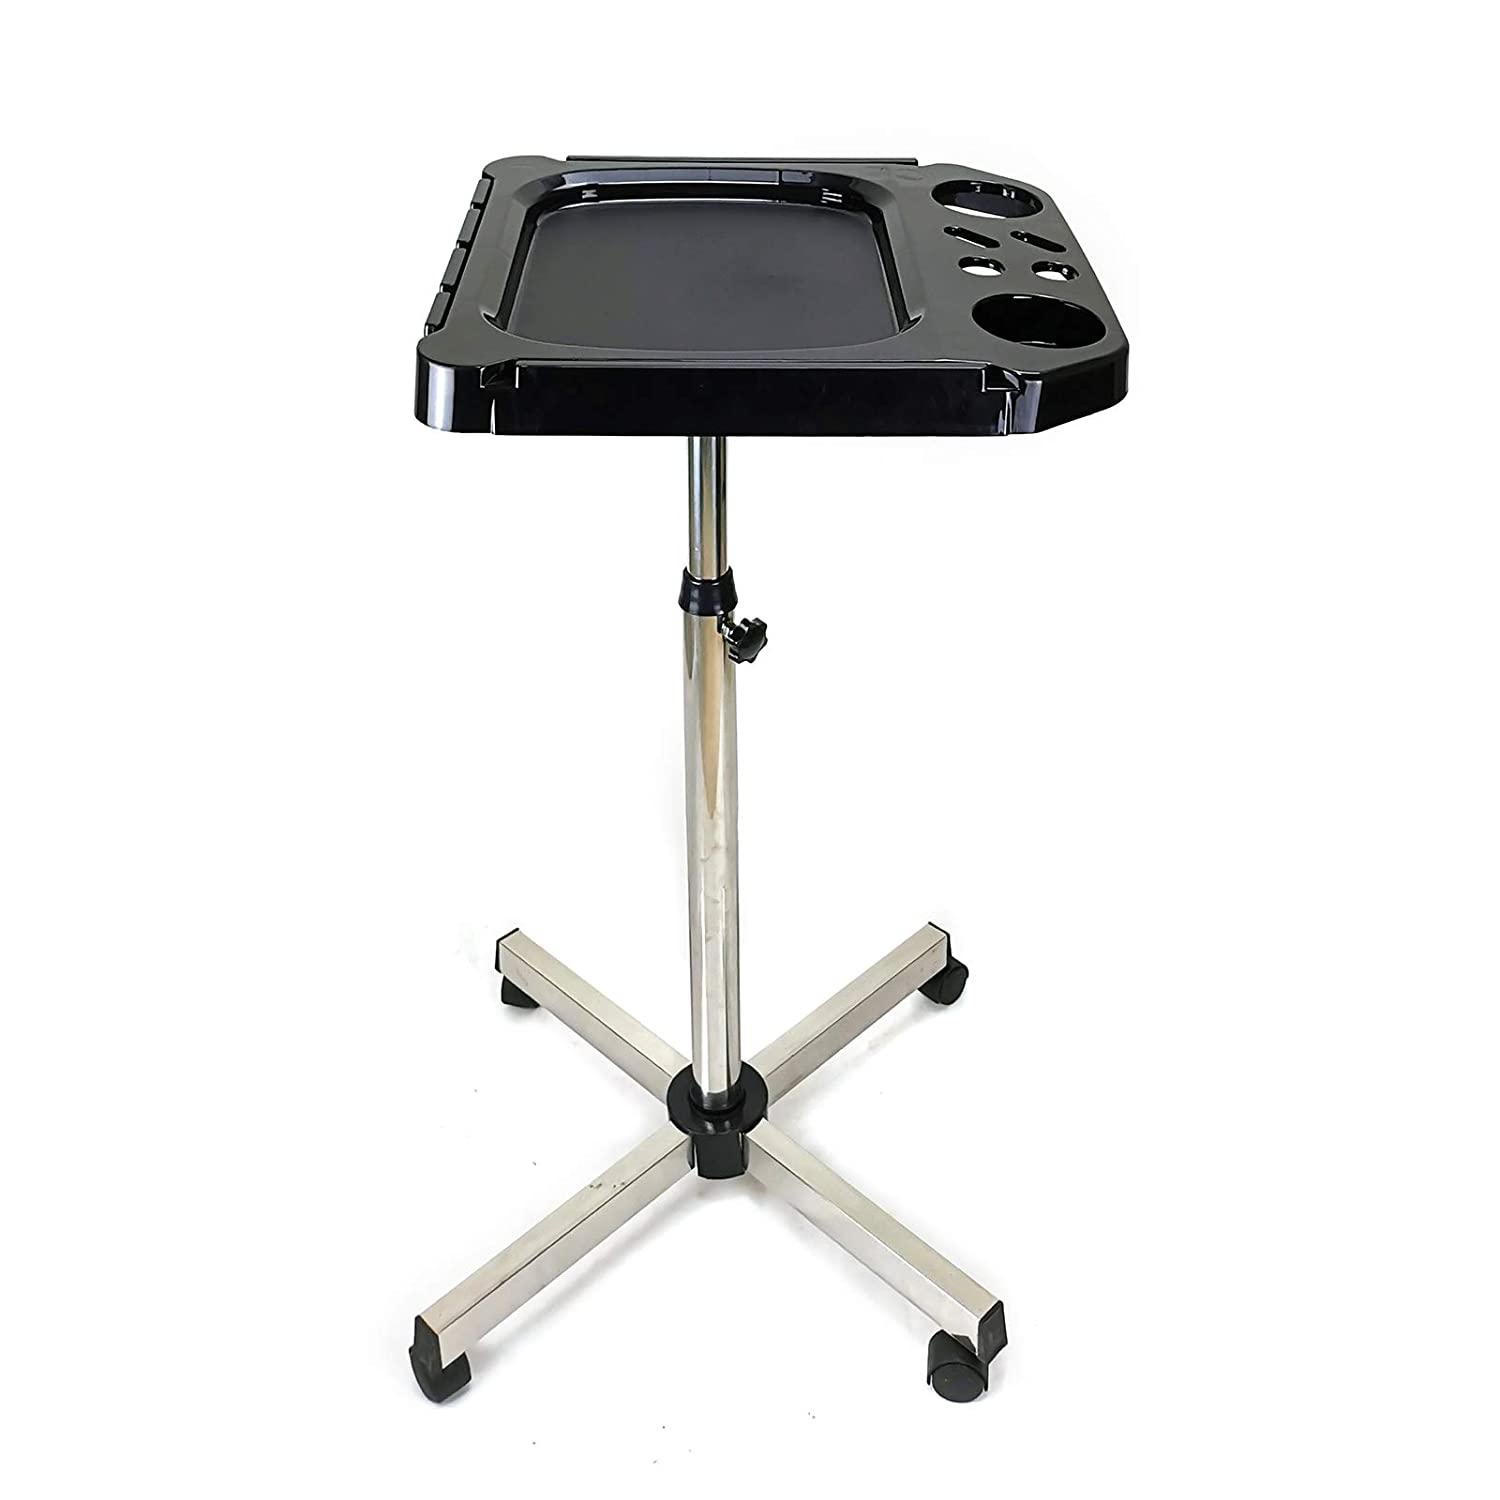 Oklahoma City Mall Adjustable Height Hair Free shipping on posting reviews Dye Cart Whee Alu Tray Rolling Salon